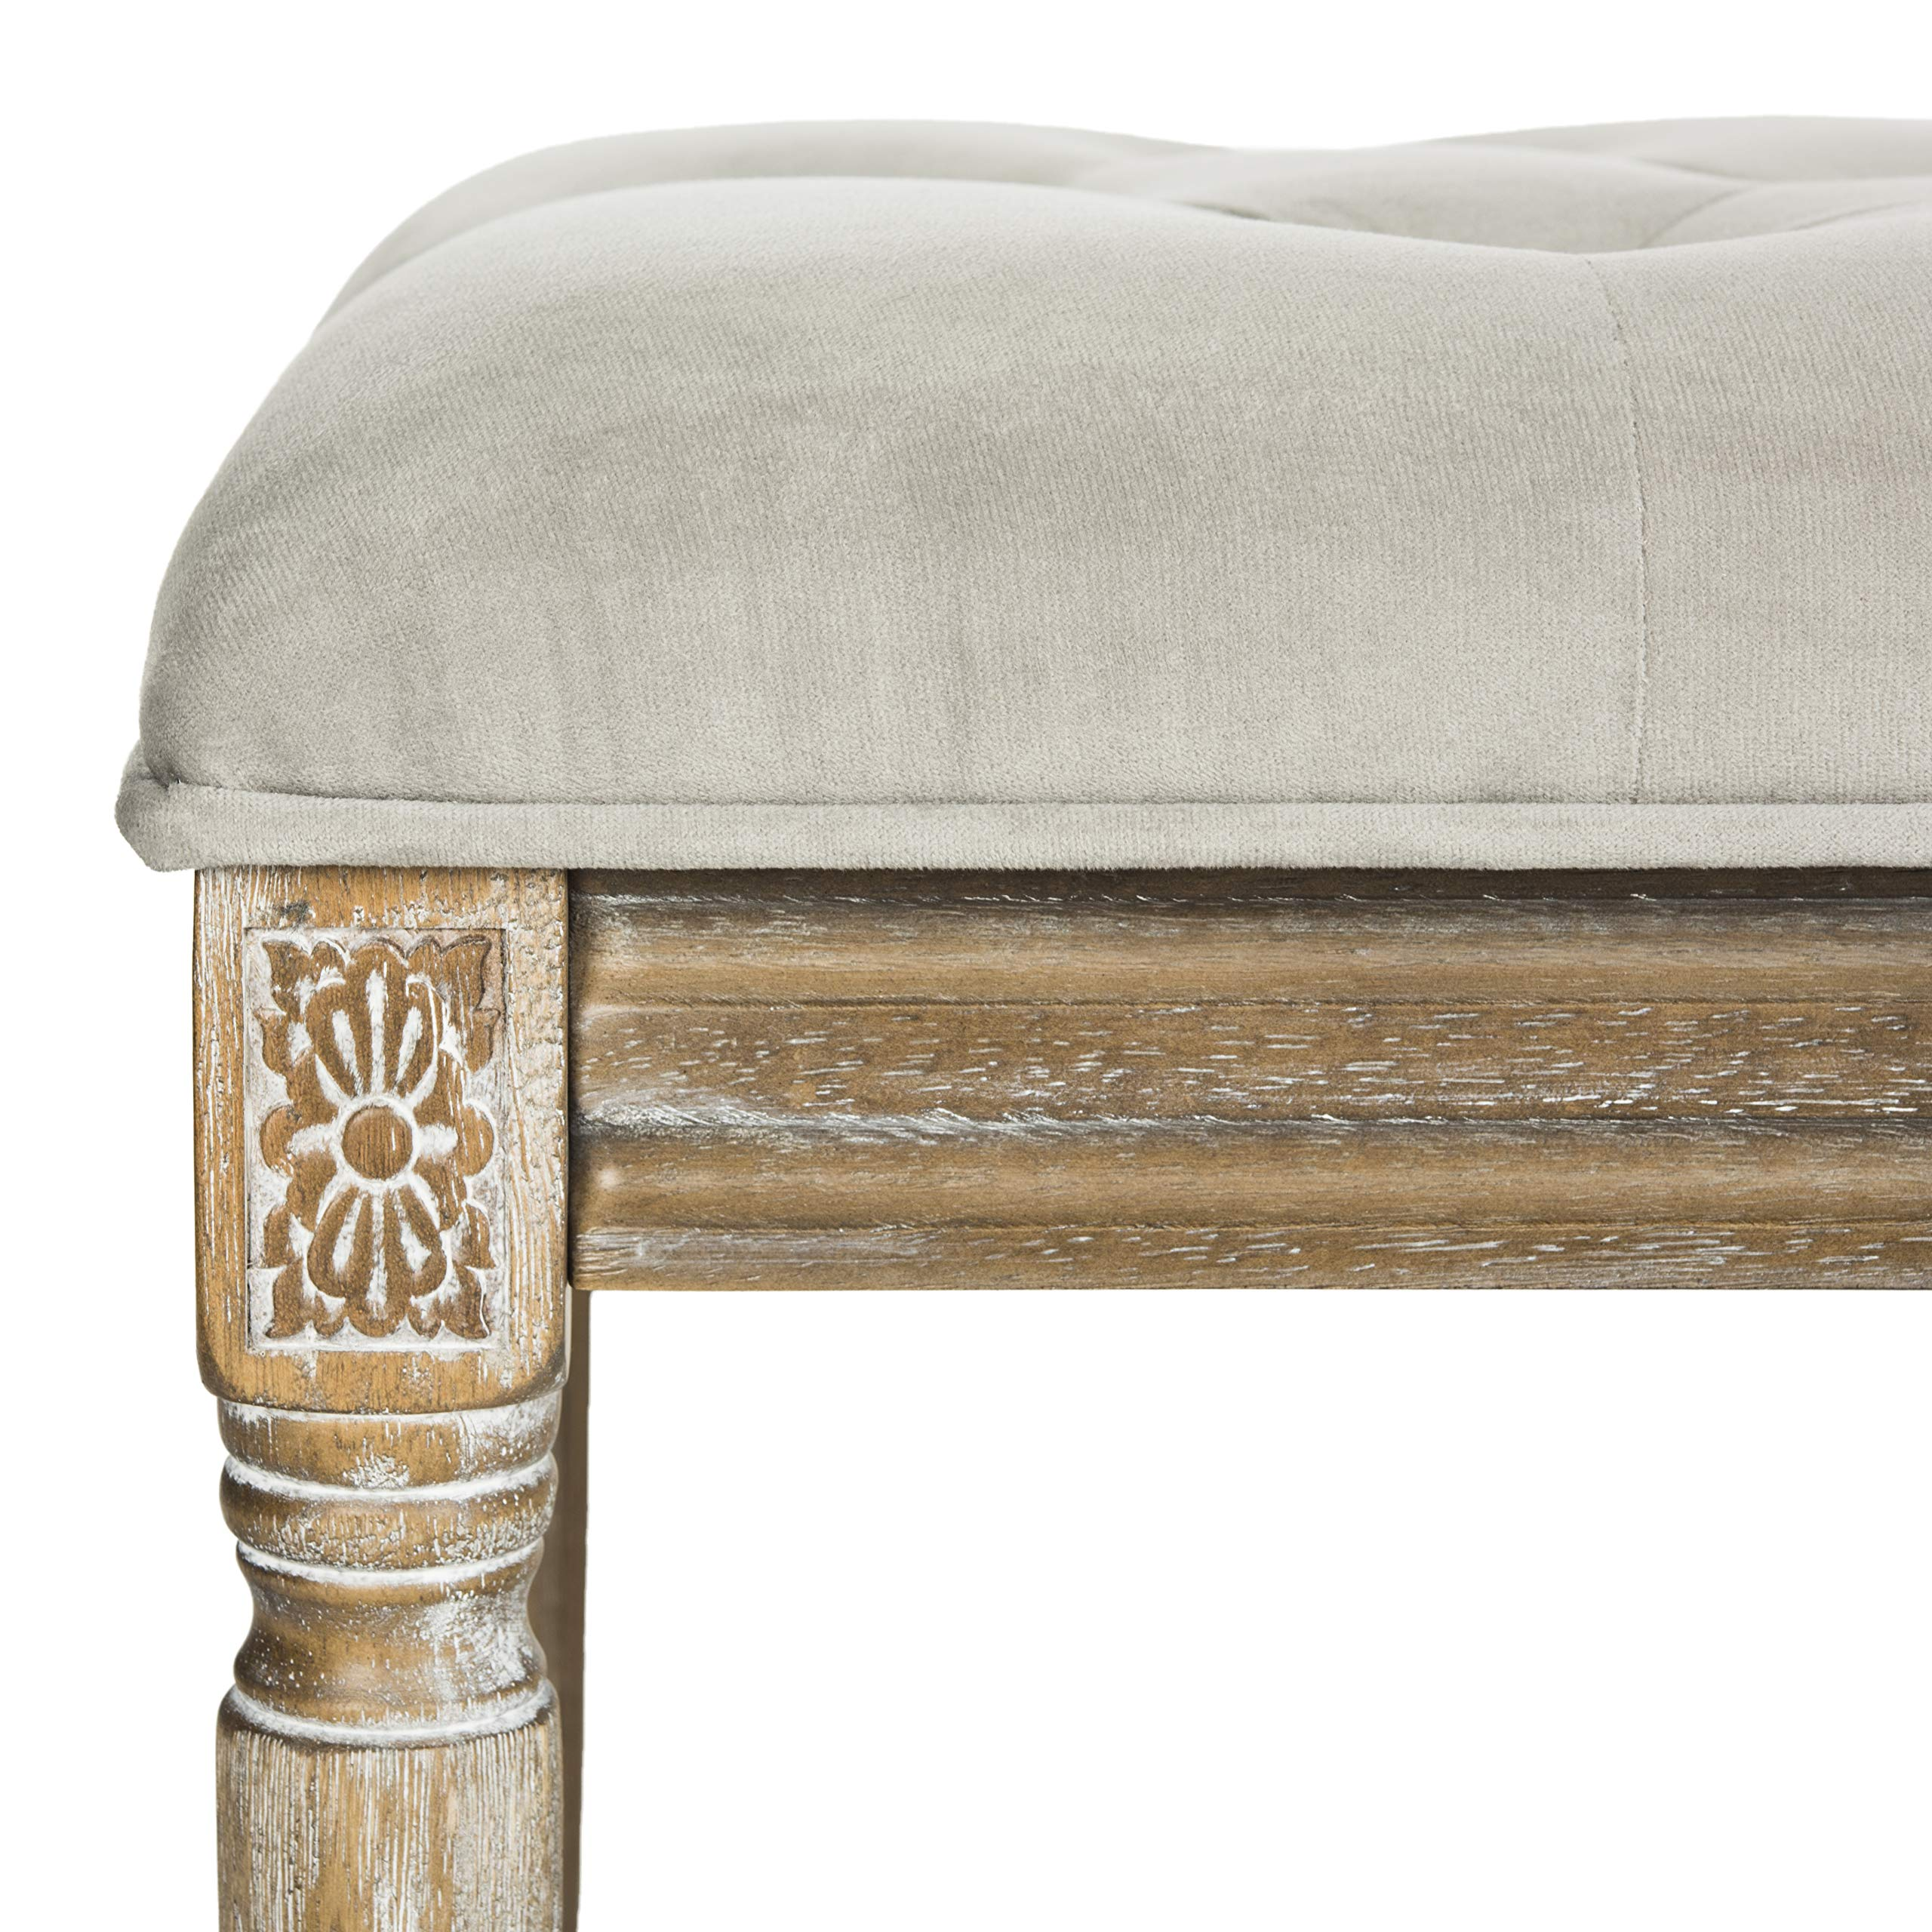 Safavieh Home Collection Rocha French Brasserie Tufted Grey and Rustic Oak 19-inch Wood Bench by Safavieh (Image #8)